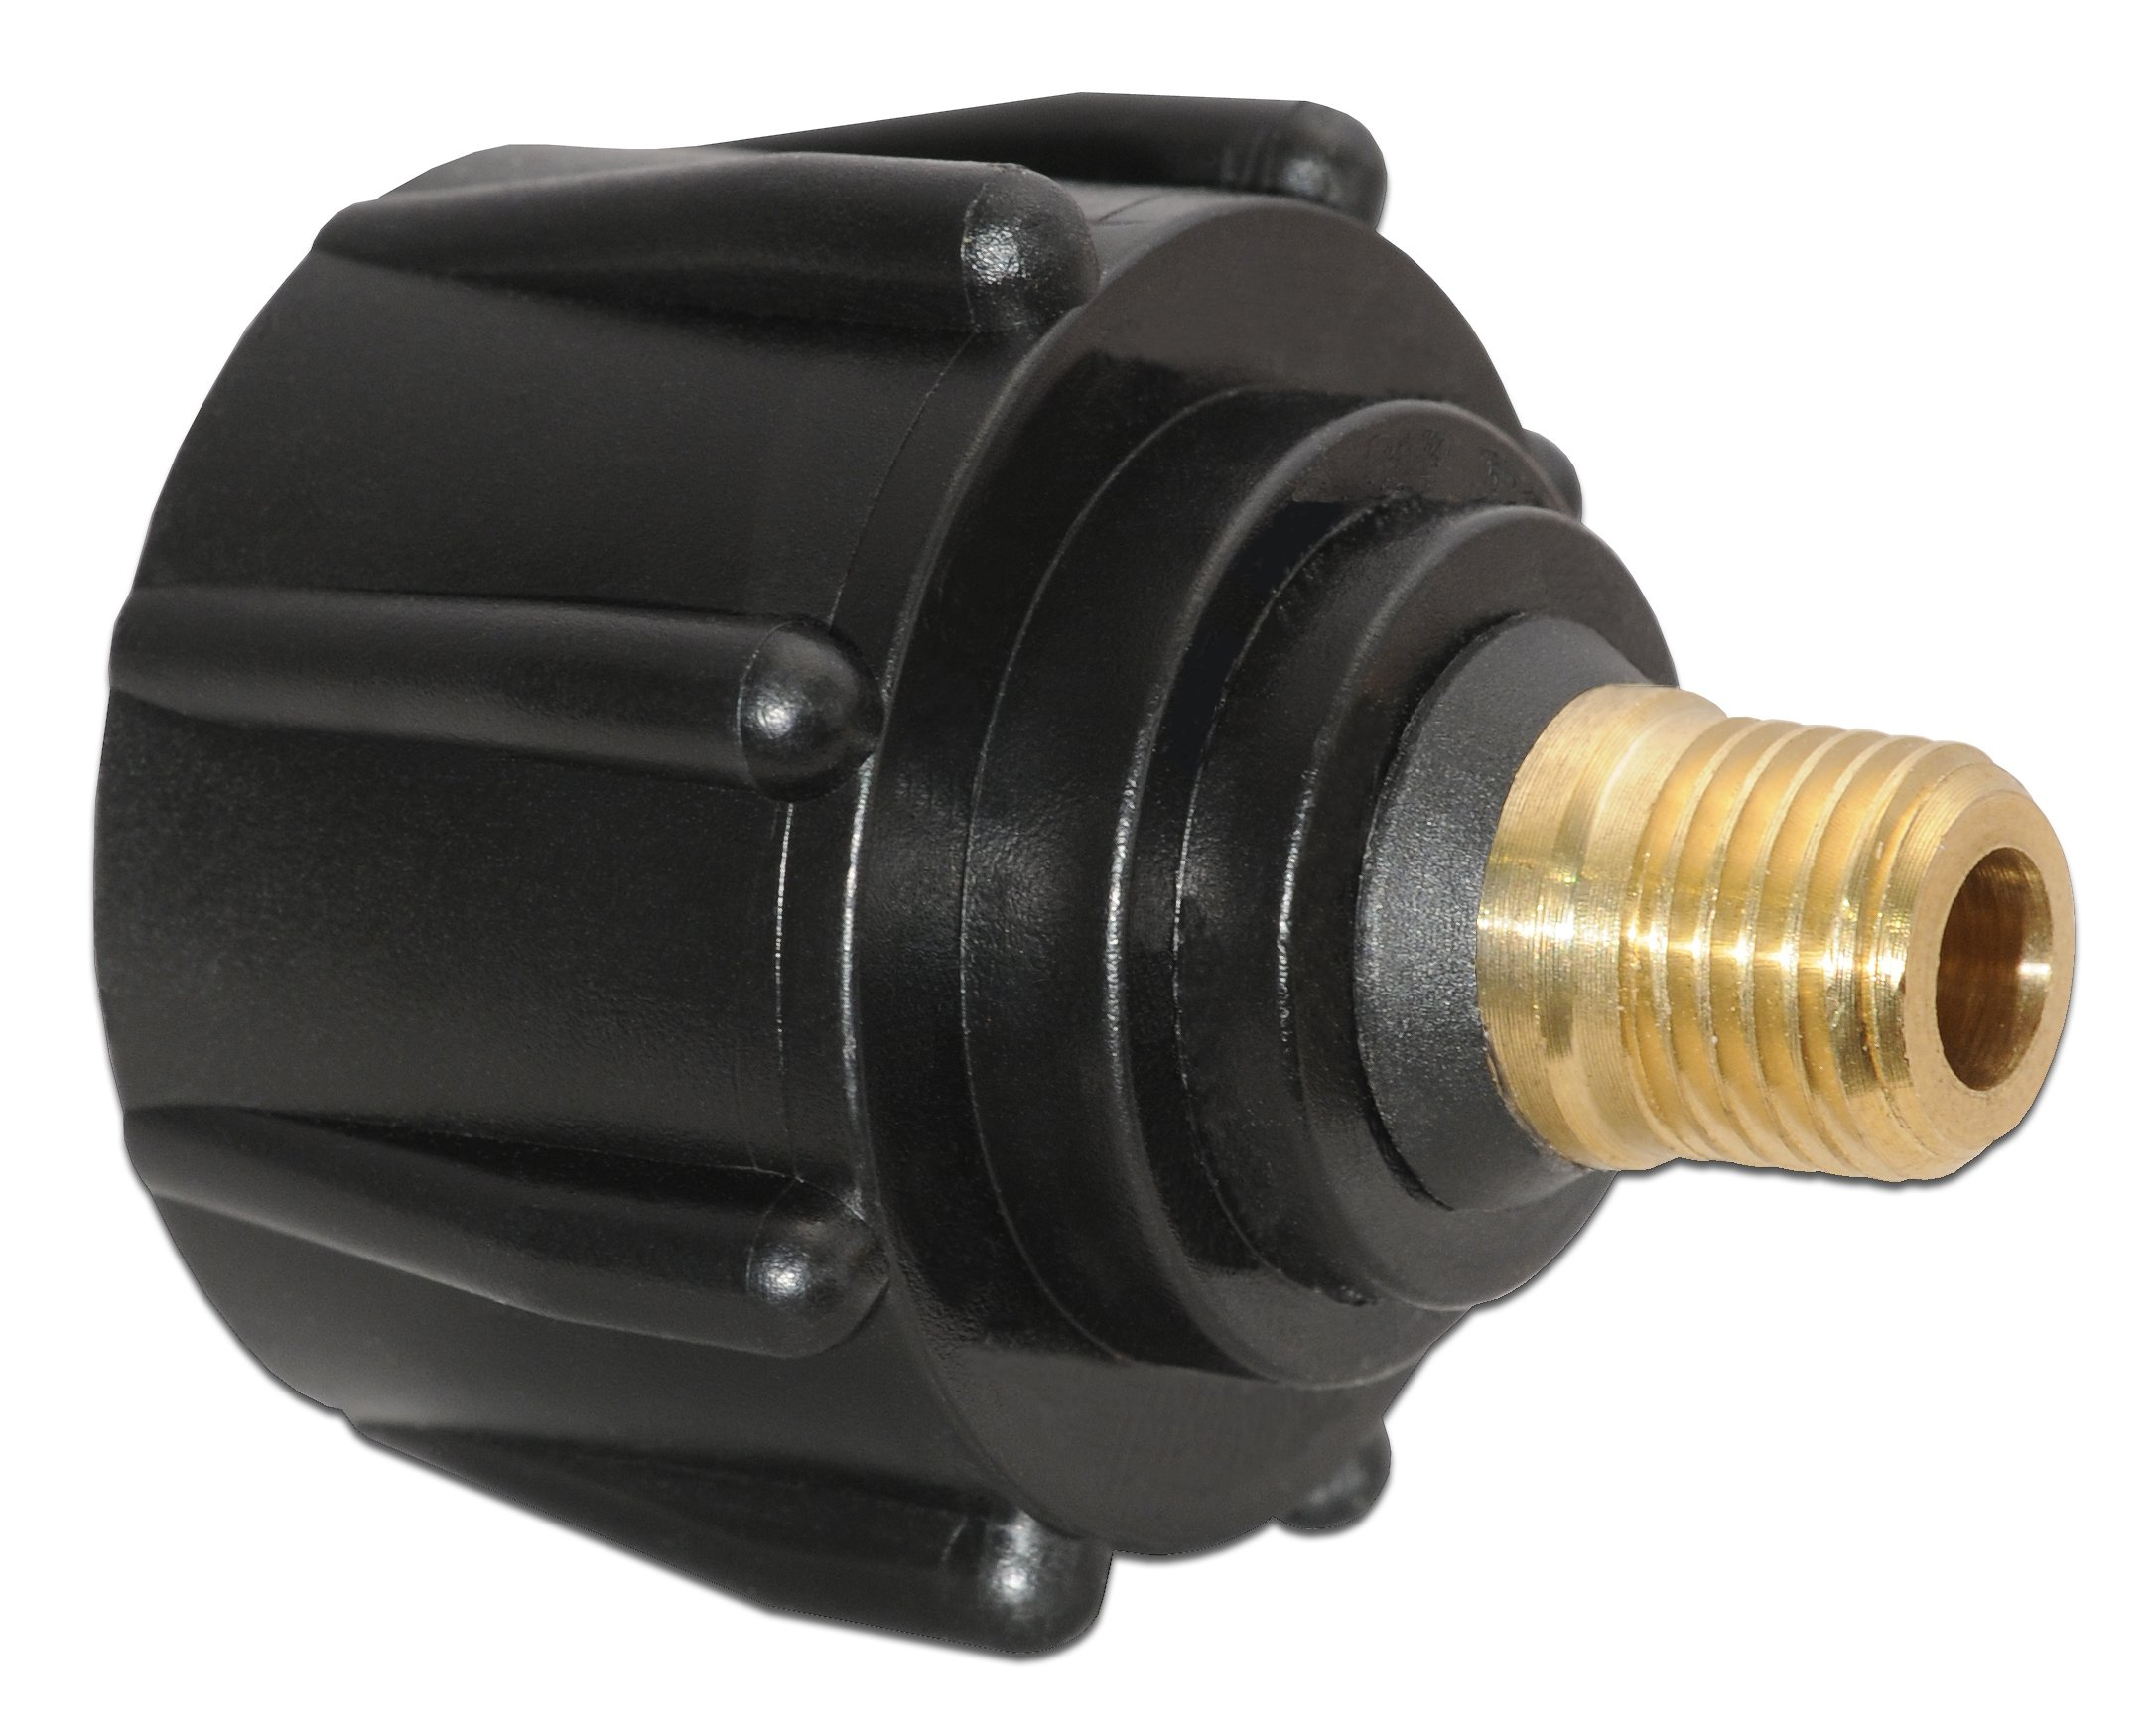 Hot Max 24216 Type 1 Acme Style Tank Coupling with Safety Valve